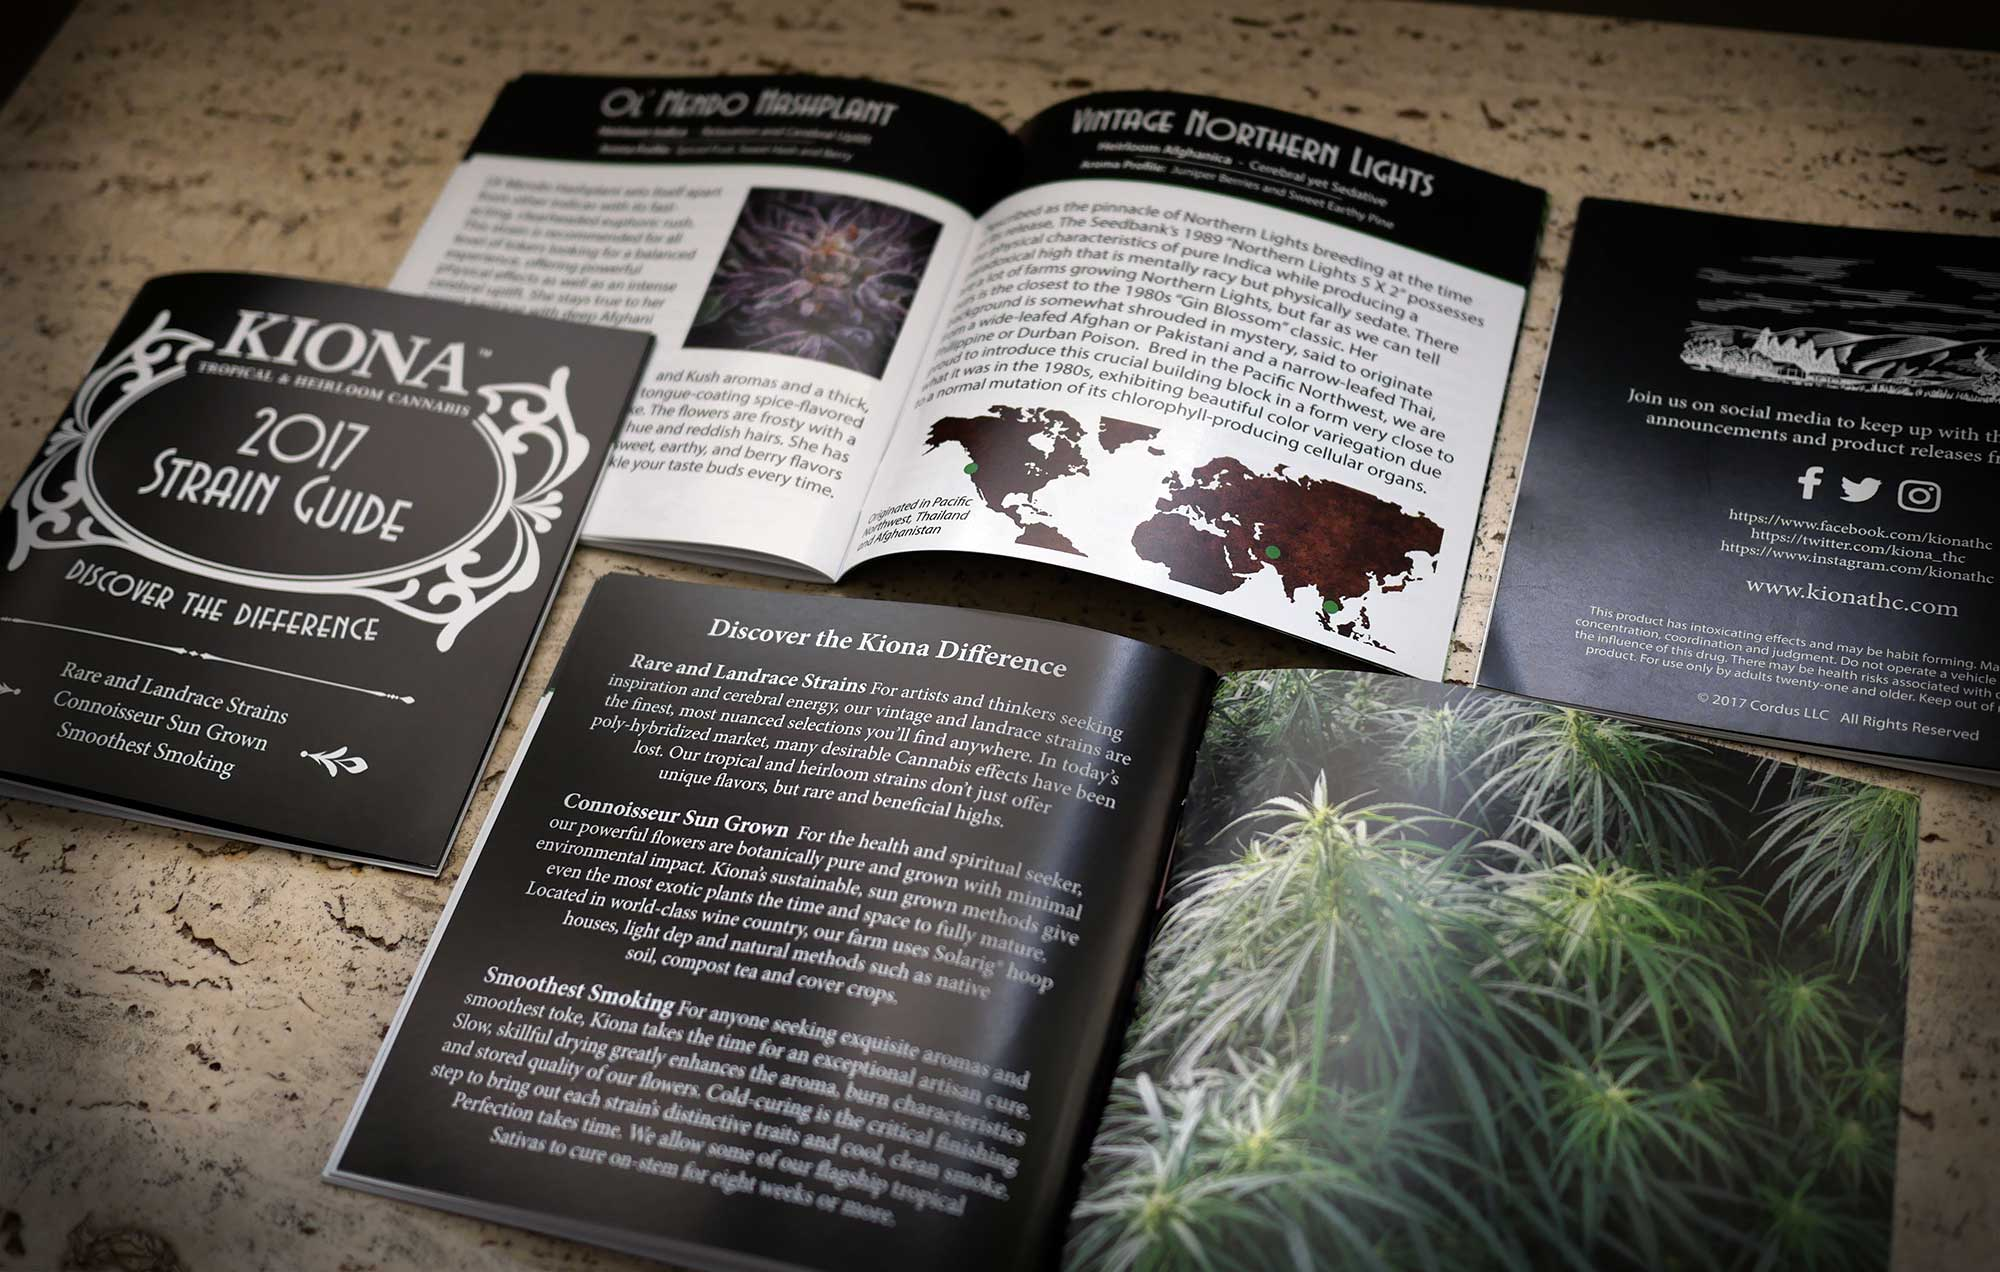 image of Kiona strain guide pages